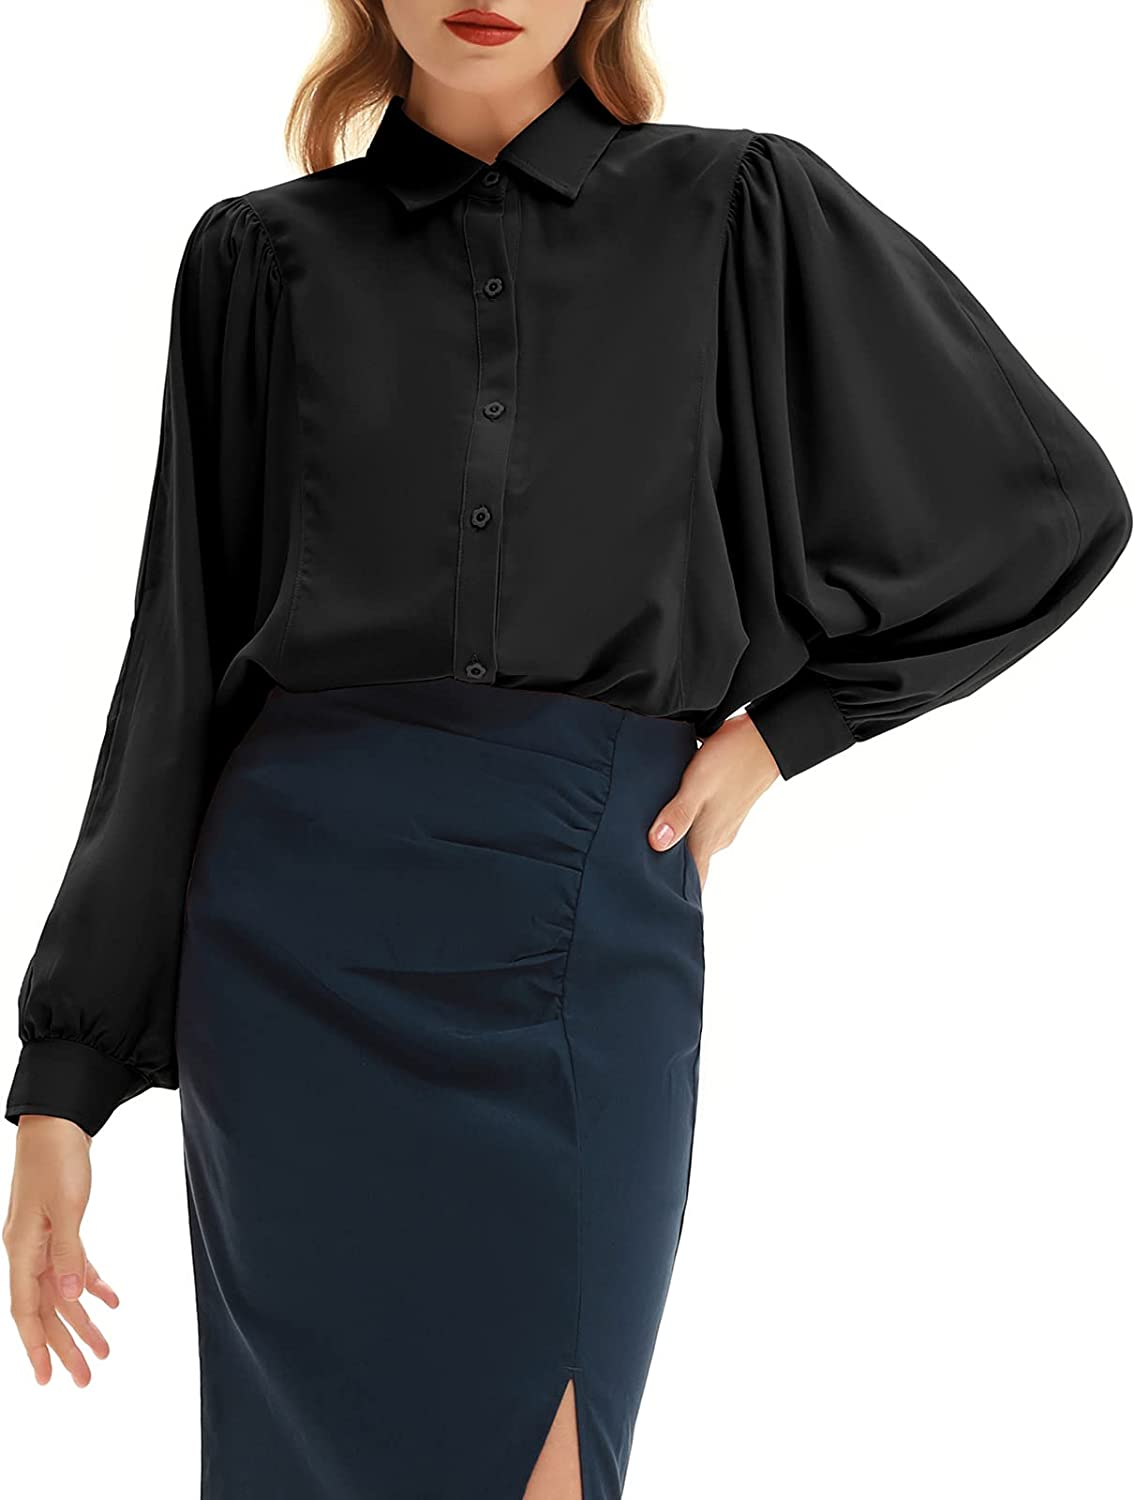 Belle Poque Women Cheap SALE Start Lantern Long Tops Sleeve Free shipping anywhere in the nation Button Shirts Pleated